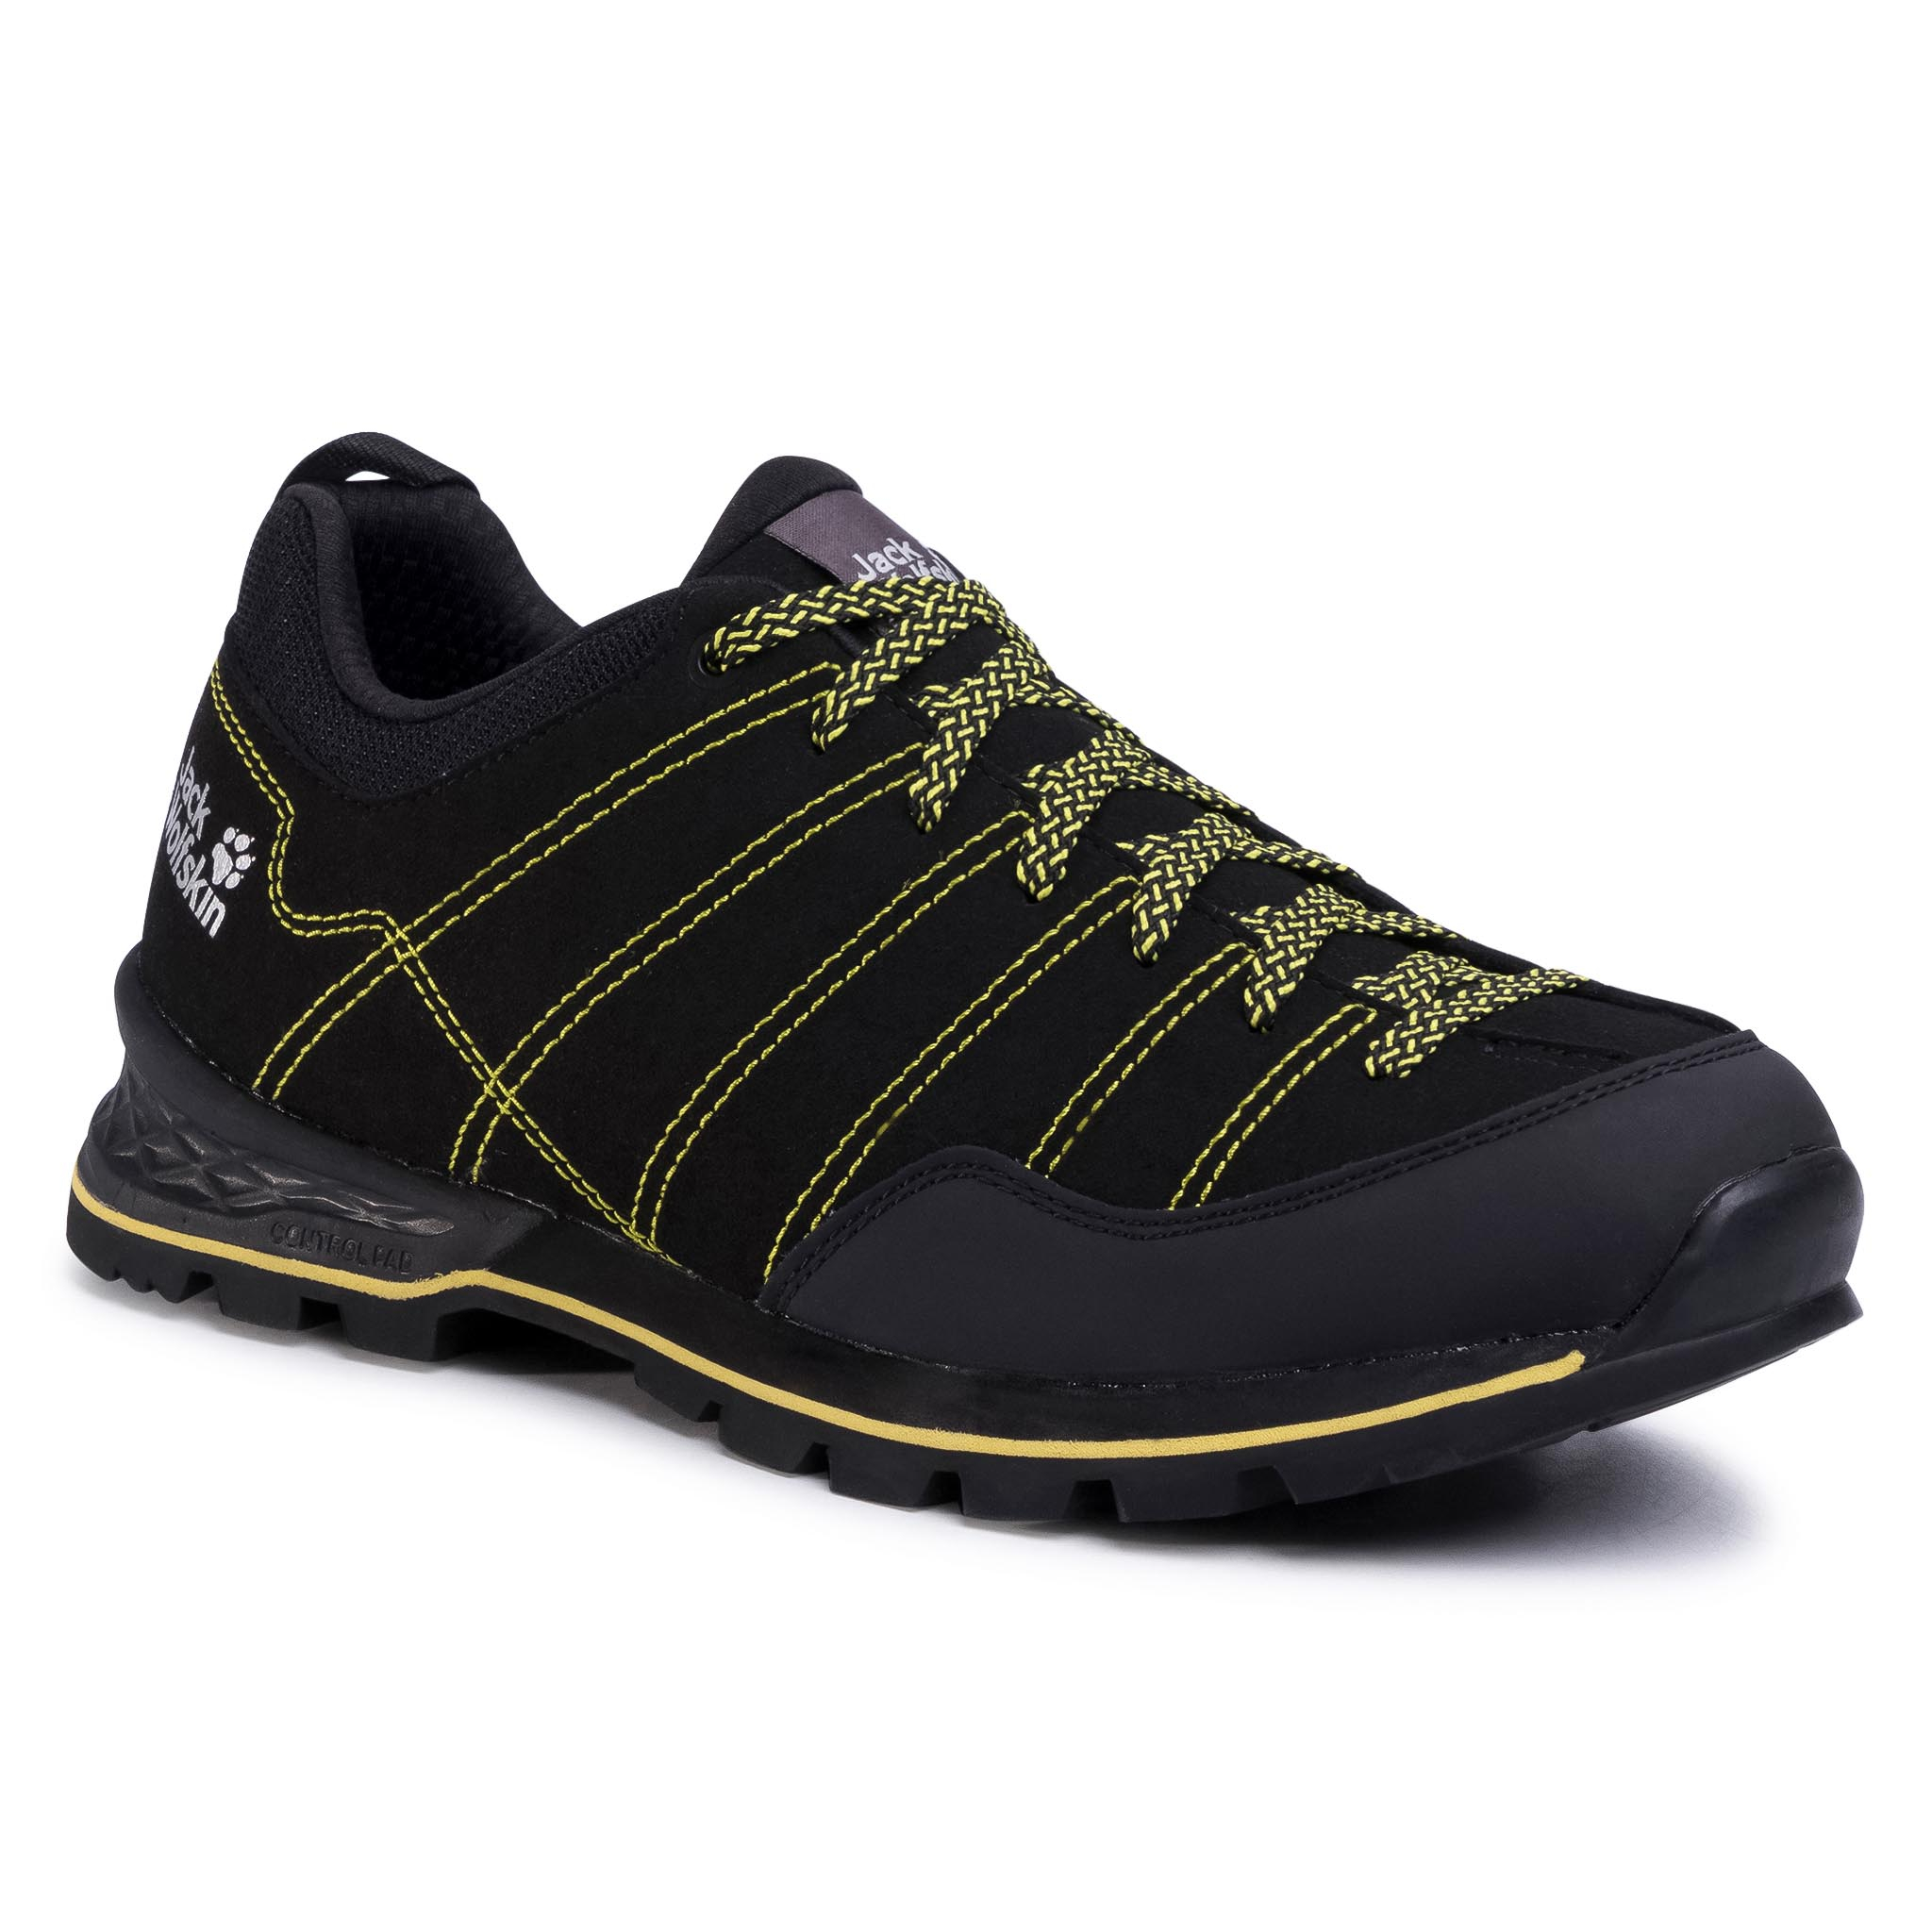 Trekkings Jack Wolfskin - Scrambler Low M 4036701 Black/Lime imagine epantofi.ro 2021